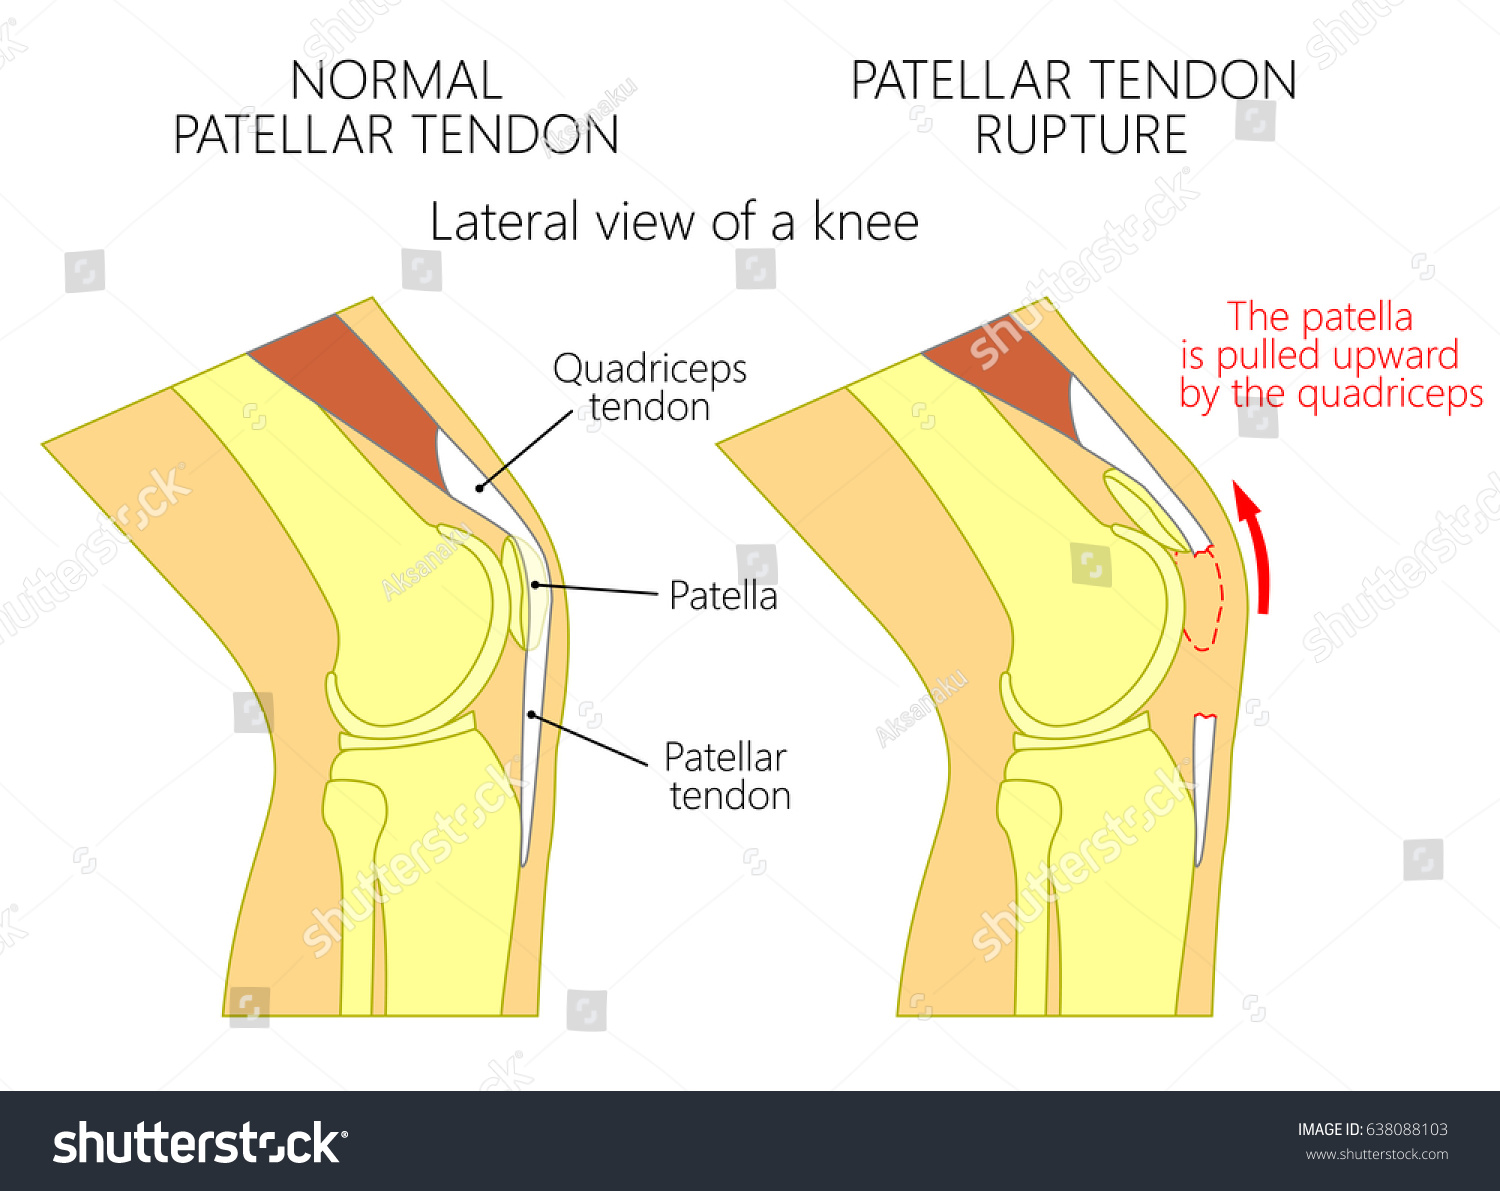 Vector illustration healthy knee joint unhealthy em vetor stock vector illustration of a healthy knee joint and an unhealthy knee with a patellar tendon rupture ccuart Choice Image